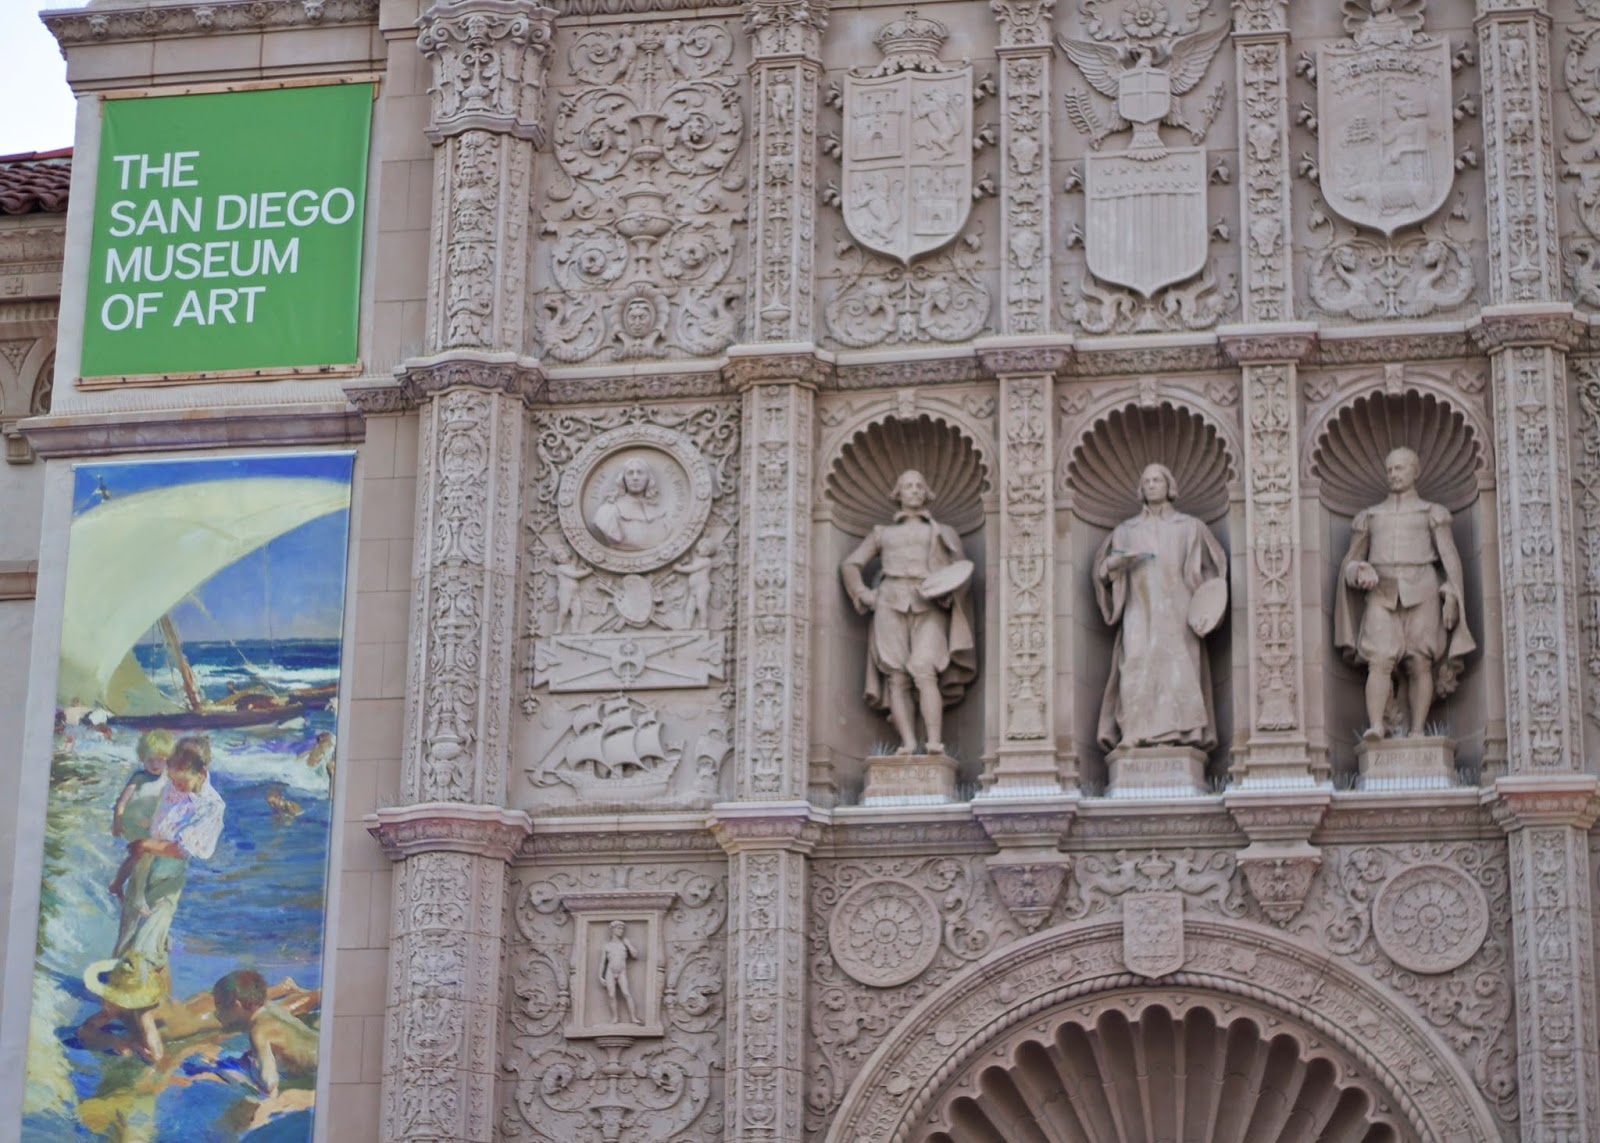 The san diego museum of art, The san diego museum of art balboa park, The san diego museum of art entrance